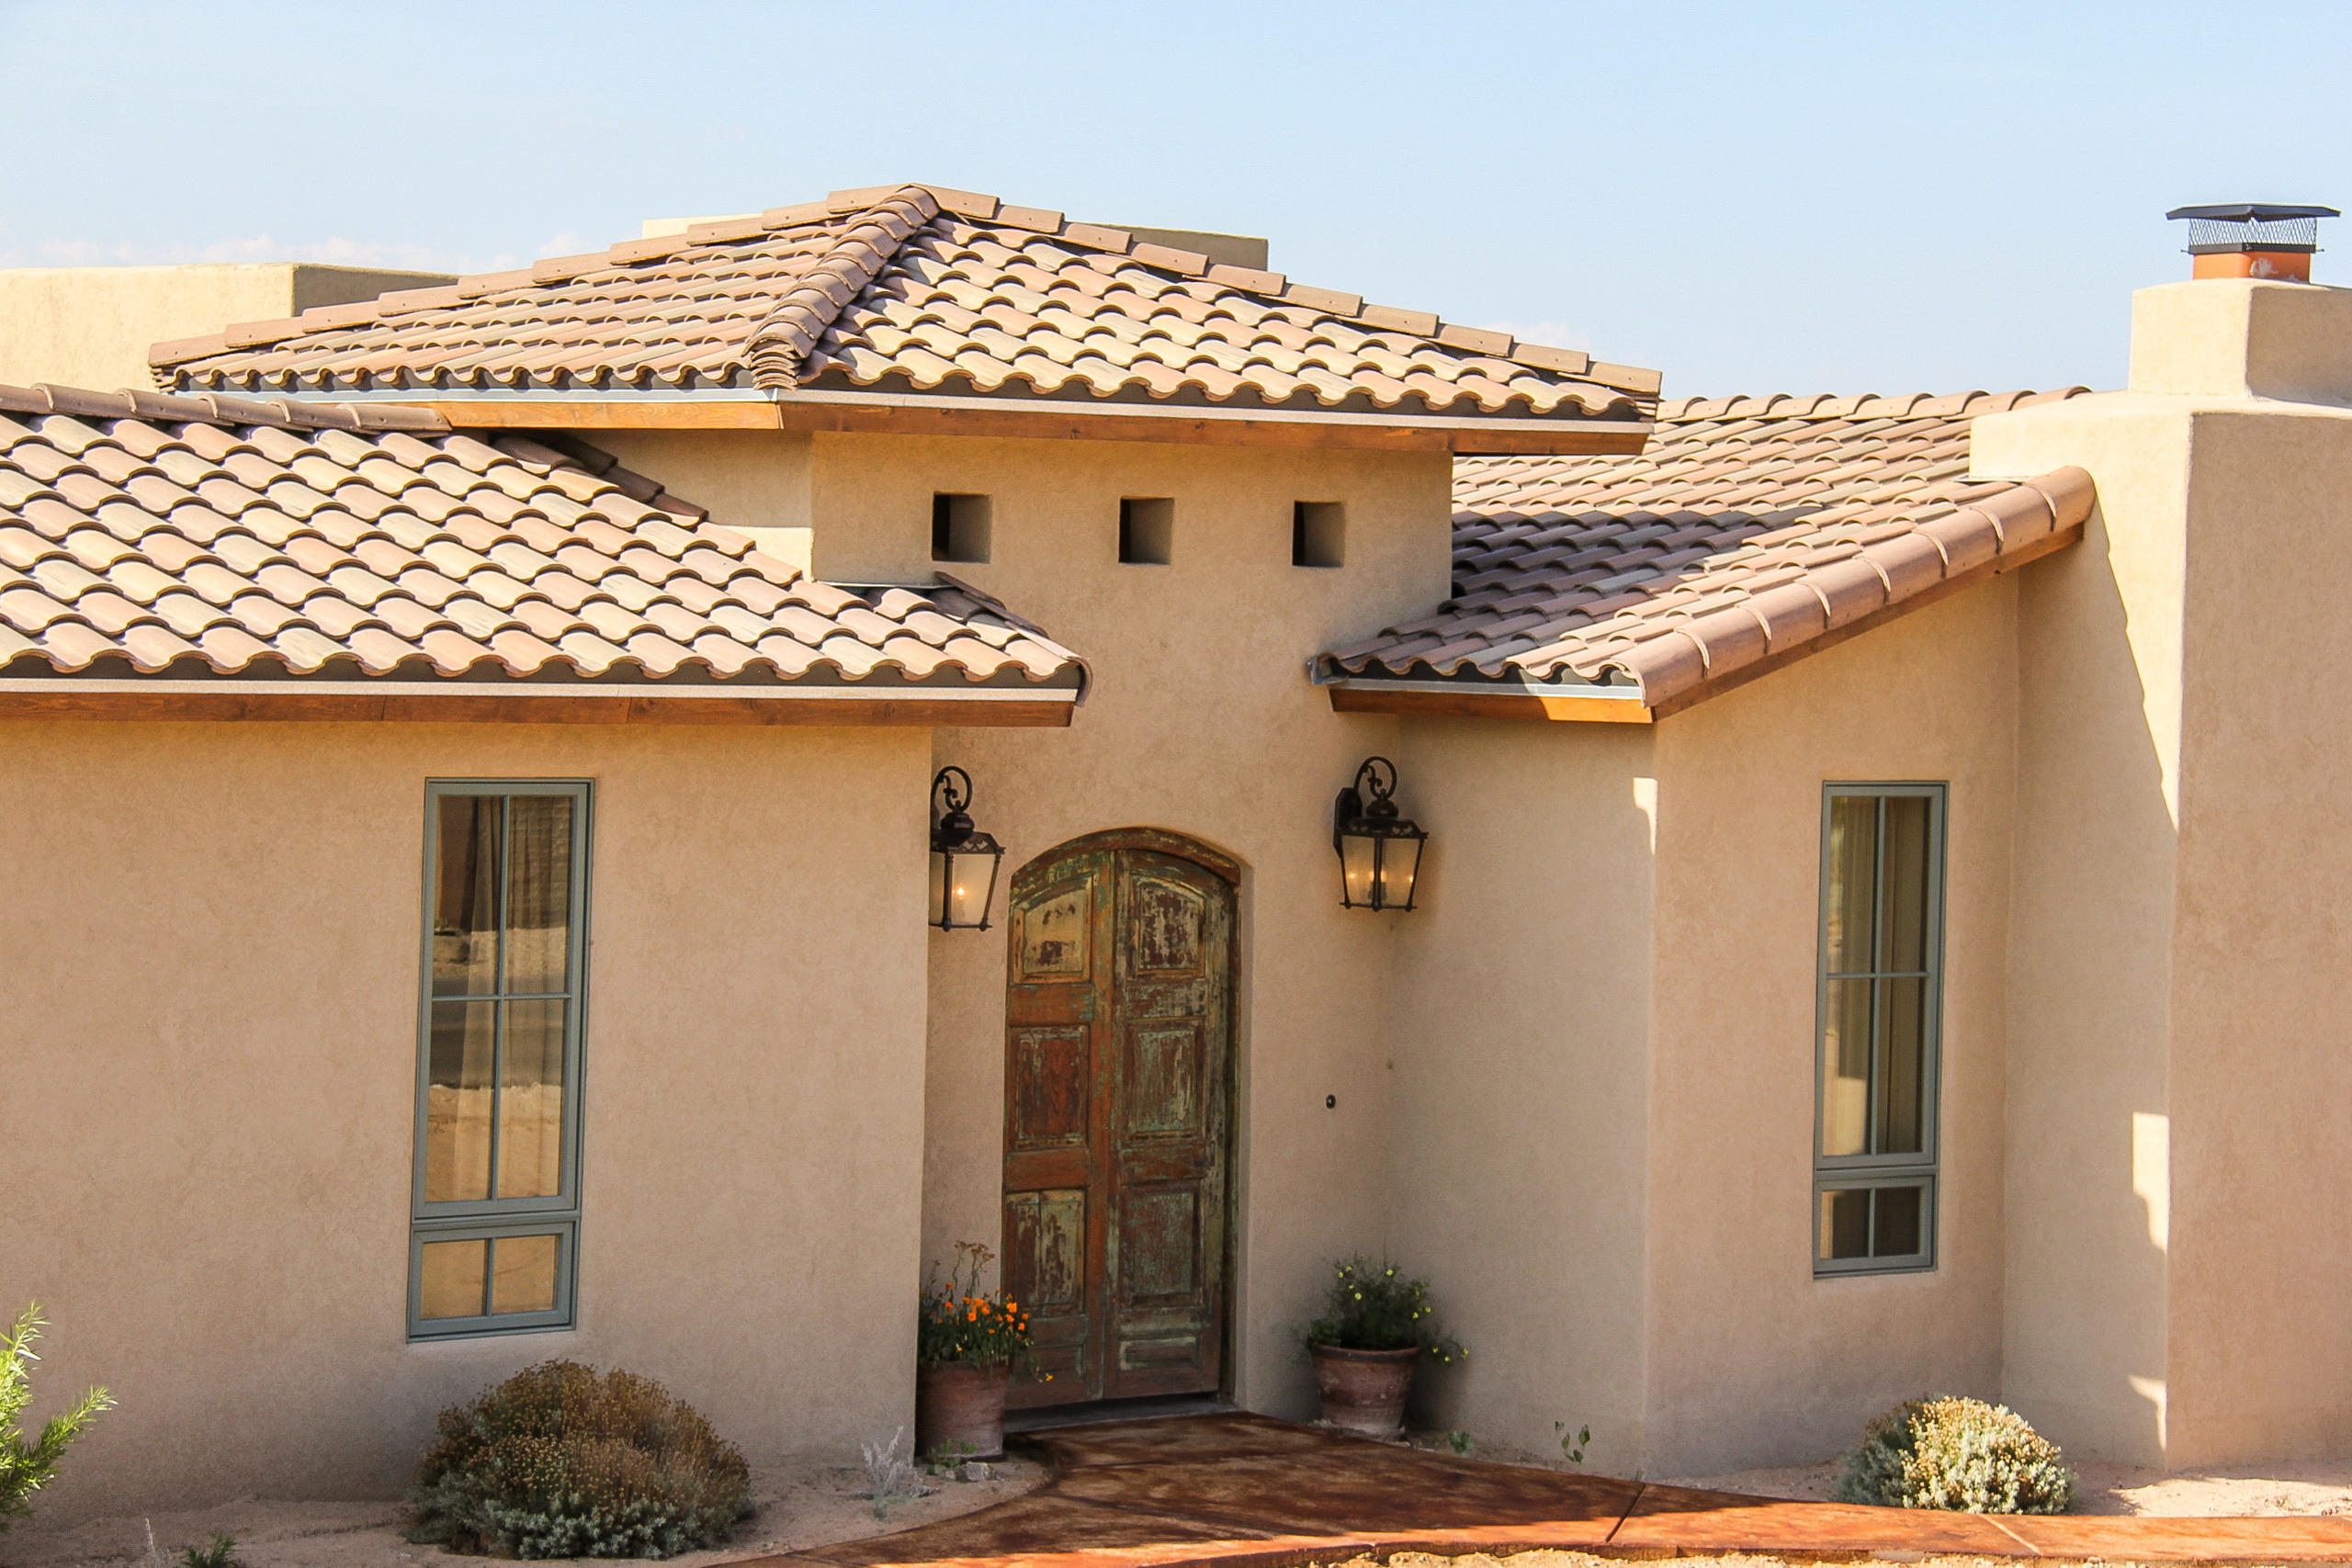 Stunning, Energy Efficient Green Home with amazing levels of luxurious amenities. Beautiful Custom Courtyard doors guide you into this traditional warm and inviting Tuscan styled home. This Home boasts Travertine tile, gleaming hardwood floors, Venetian plastered walls and cathedral ceilings through out, Custom Wood-burning fireplaces with stone mantle brick arches, along with picture views of the Sandia's. Kitchen area has built-in custom china hutch with granite top serving areas and beautiful cabinetry. This Gourmet Chef's Kitchen area is the heart of the home with inviting open entertaining space that features, Built-in Double-Sided refrigerator and freezer, professional series Stainless Steel 6 burner plus griddle, Large walk-in pantry  and so much more! Must see This Amazing Home!